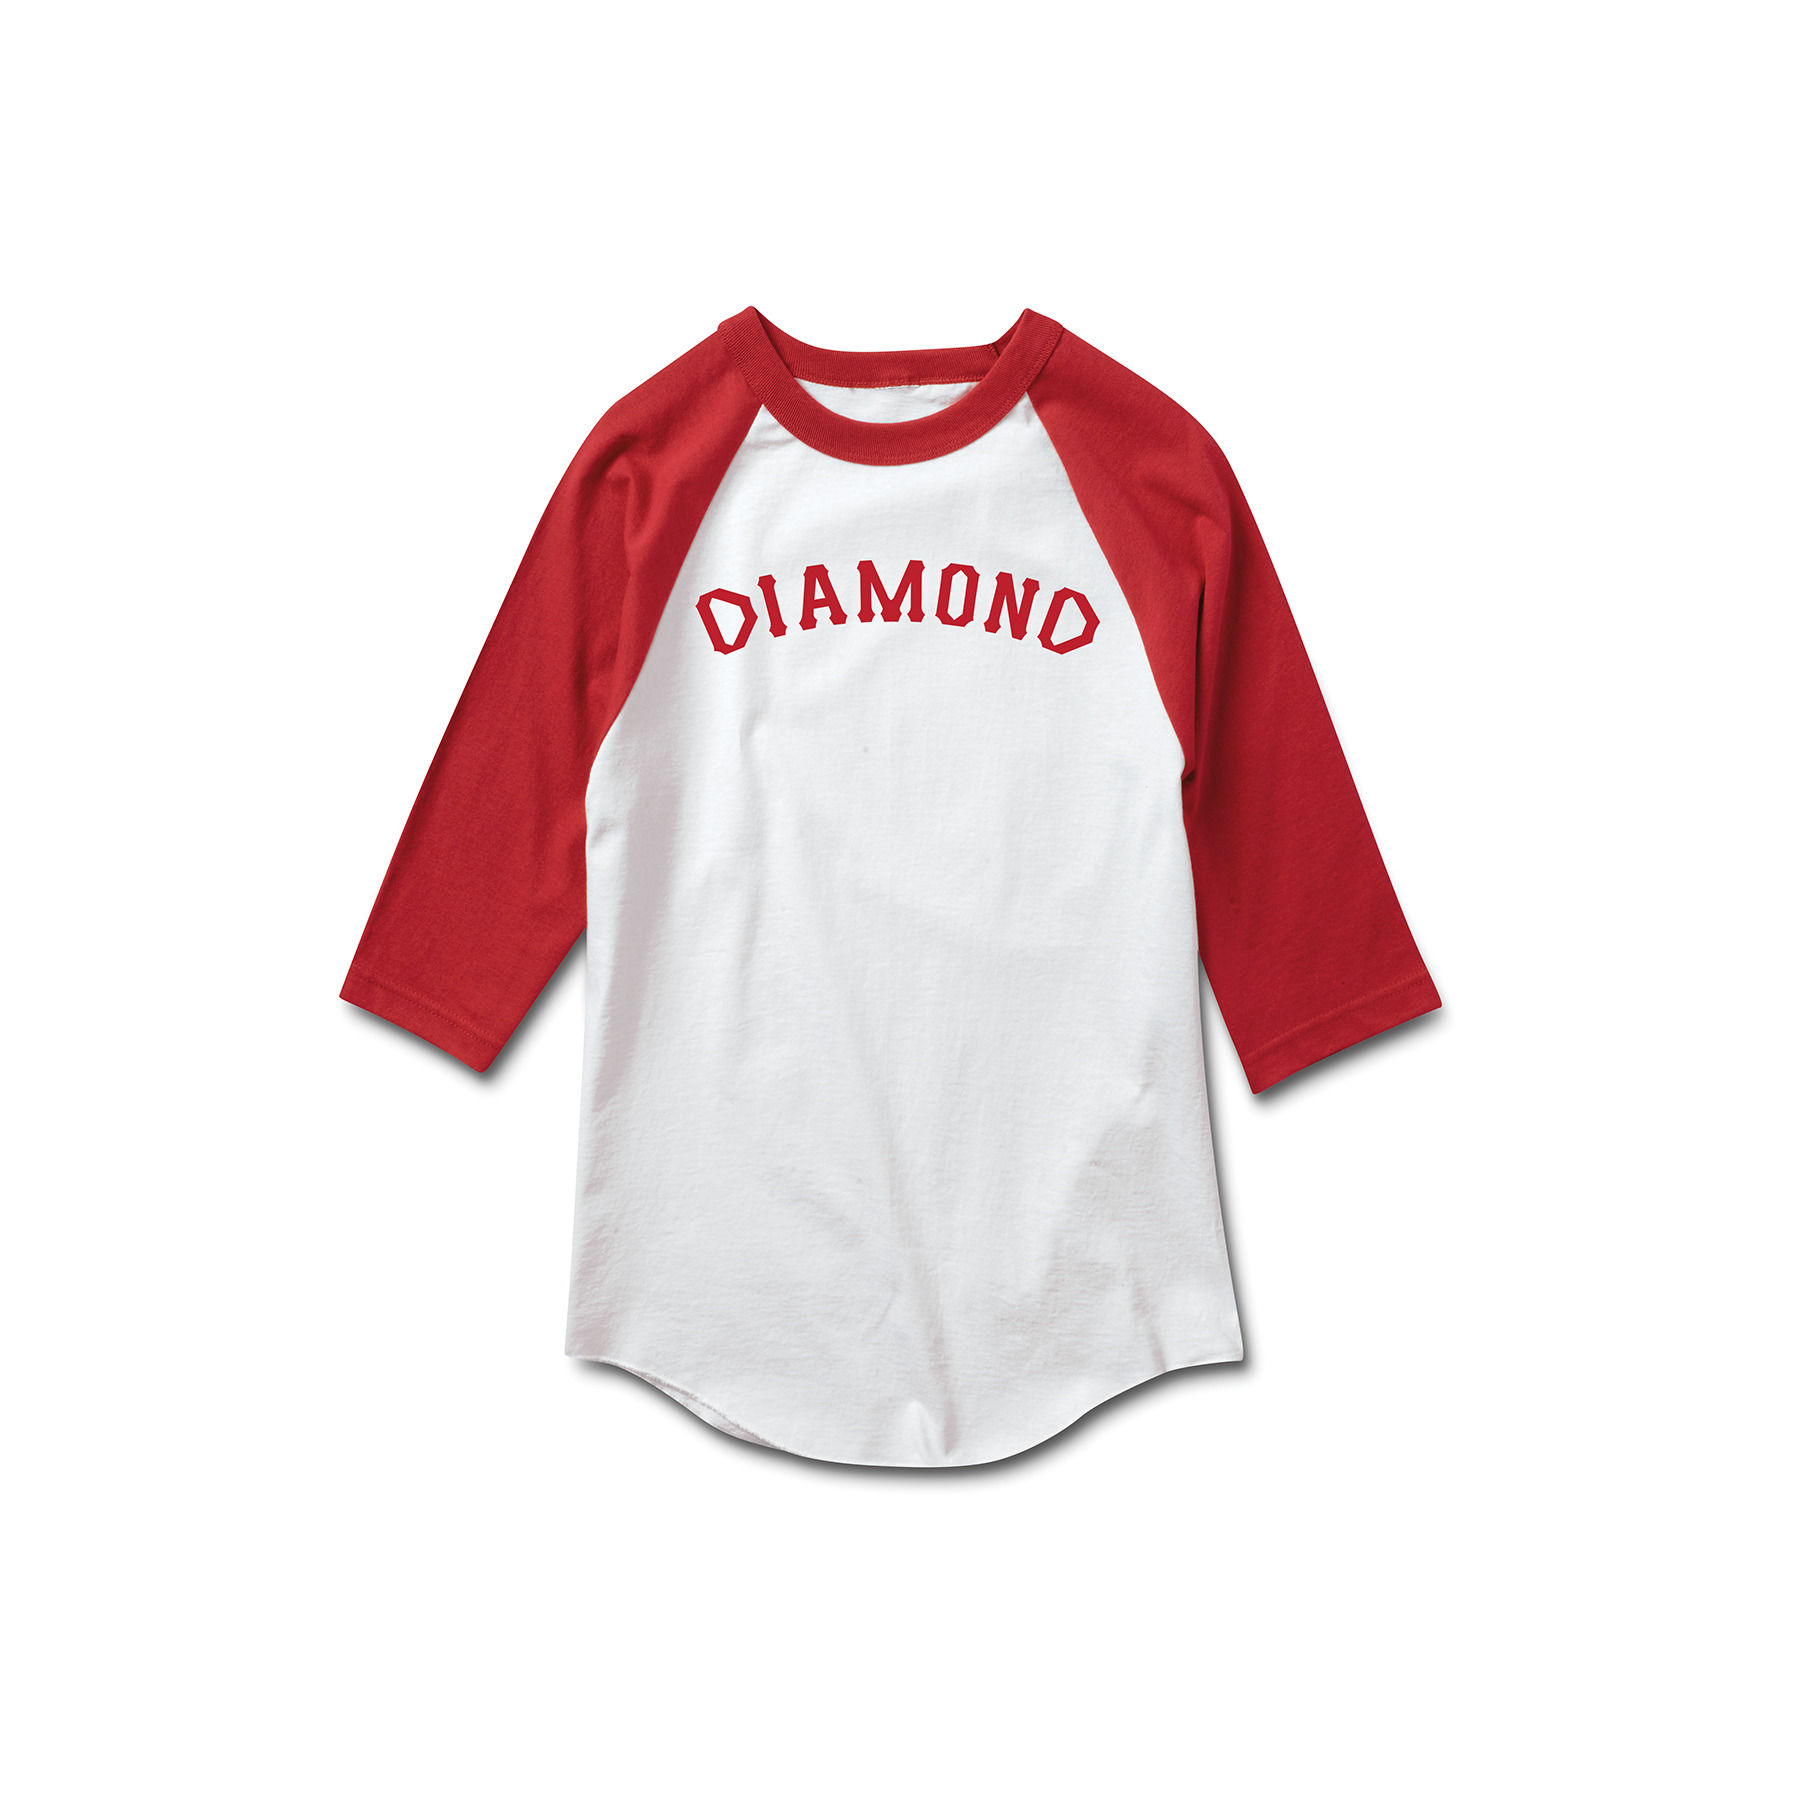 【SALE】Diamond SUPPLY CO. DUGOUT 98 3/4 TEE